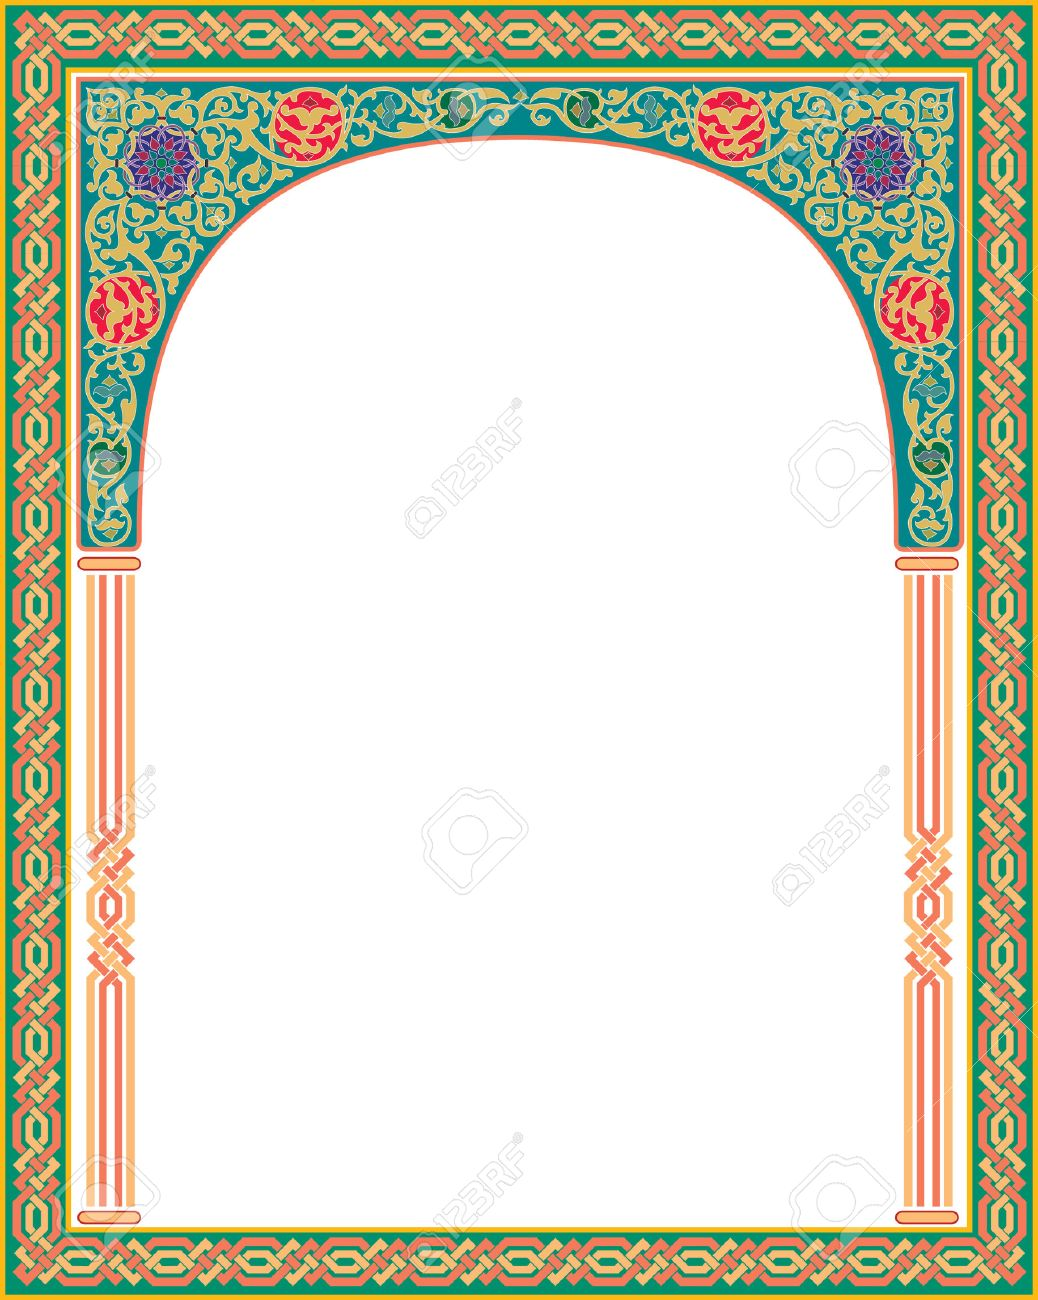 Islamic arabesque style border frame with flourish ornament islamic arabesque style border frame with flourish ornament colored stock vector 23185783 thecheapjerseys Image collections